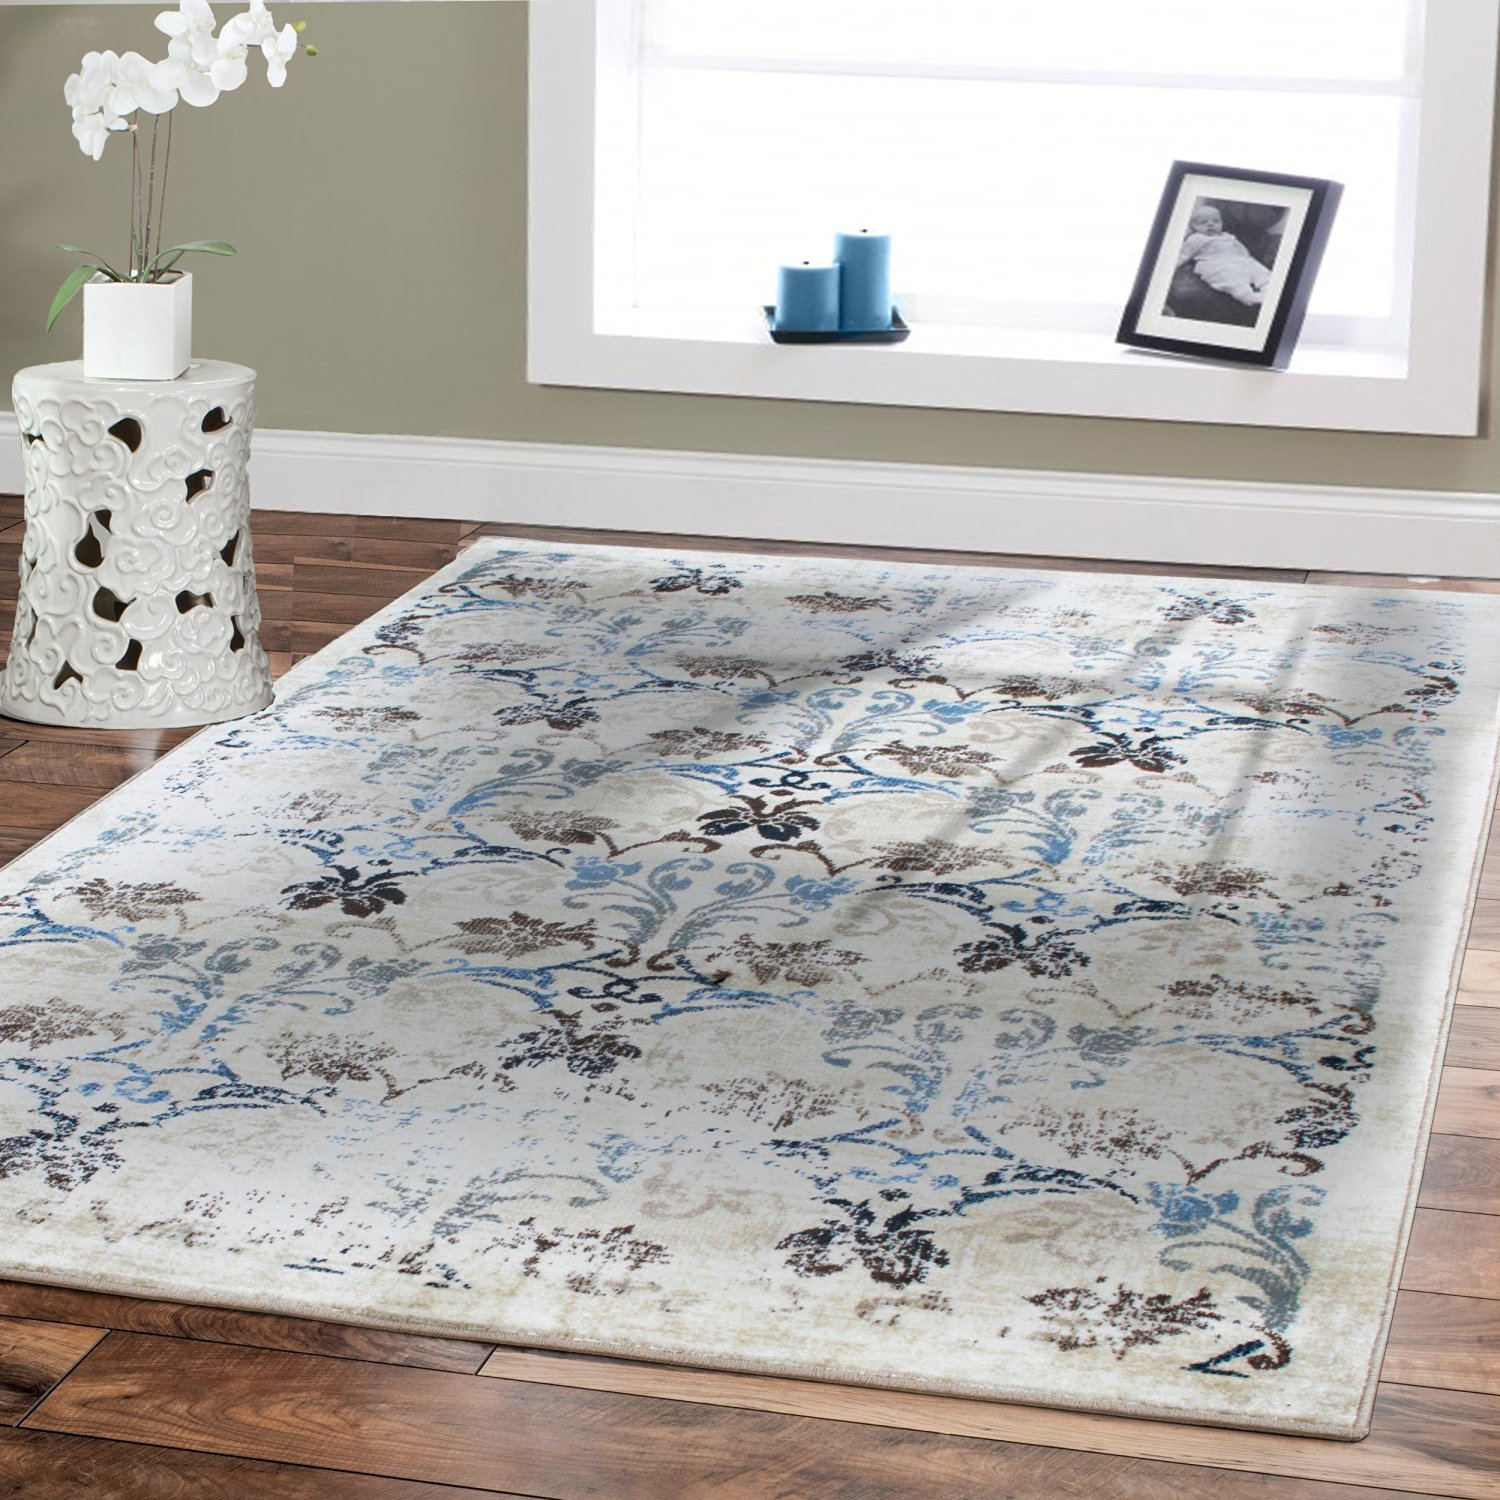 Get Quotations Premium Soft Rugs Small Rug For Bedroom Ivory 2x3 Foyer Indoor Area Clearance Beige